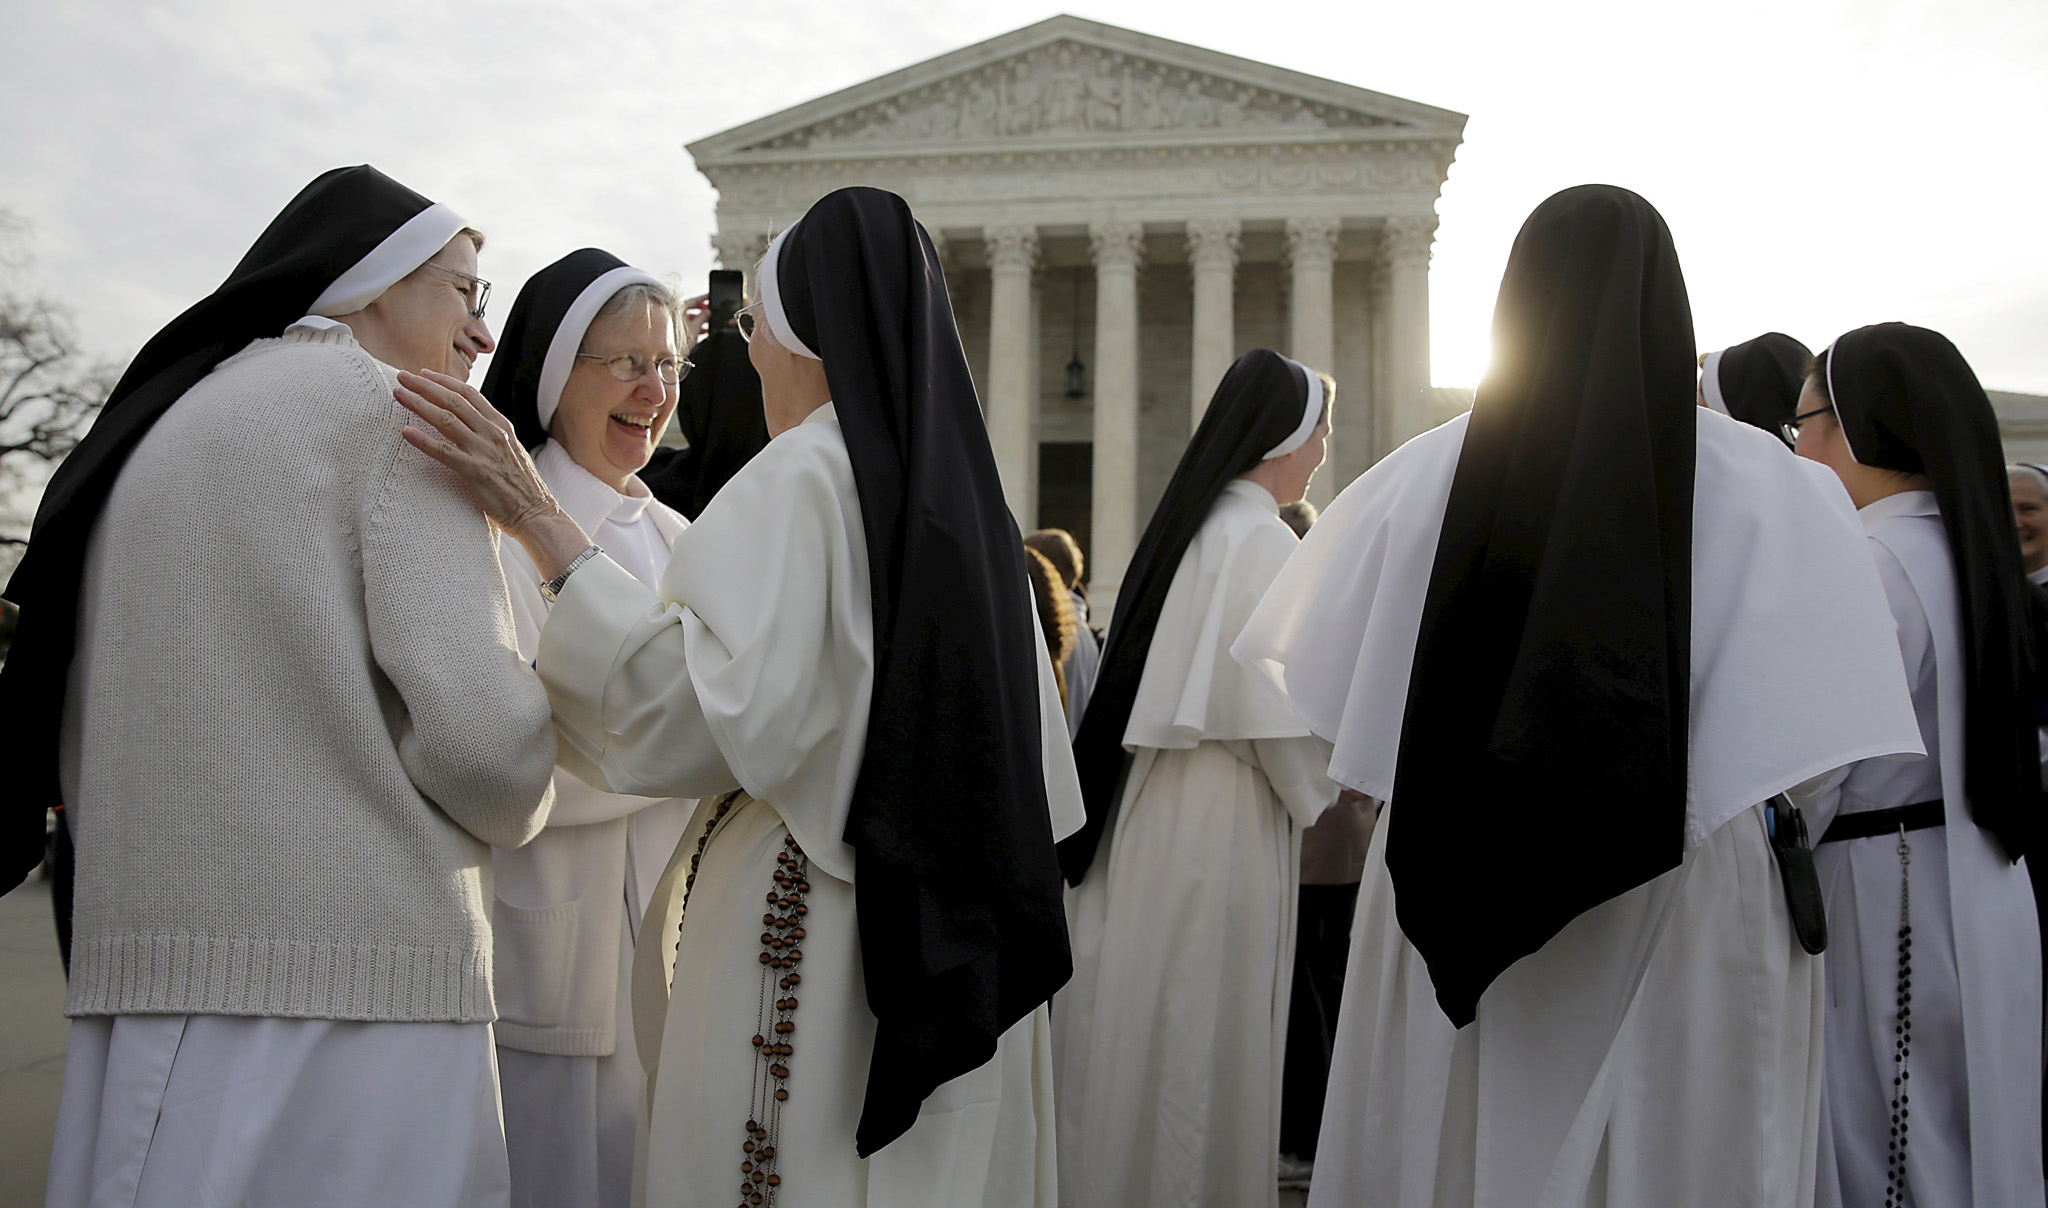 Nuns speak to each other before Zubik v. Burwell is heard by the U.S. Supreme Court in Washington...Nuns speak to each other before Zubik v. Burwell, an appeal brought by Christian groups demanding full exemption from the requirement to provide insurance covering contraception under the Affordable Care Act, is heard by the U.S. Supreme Court in Washington, March 23, 2016. REUTERS/Joshua Roberts